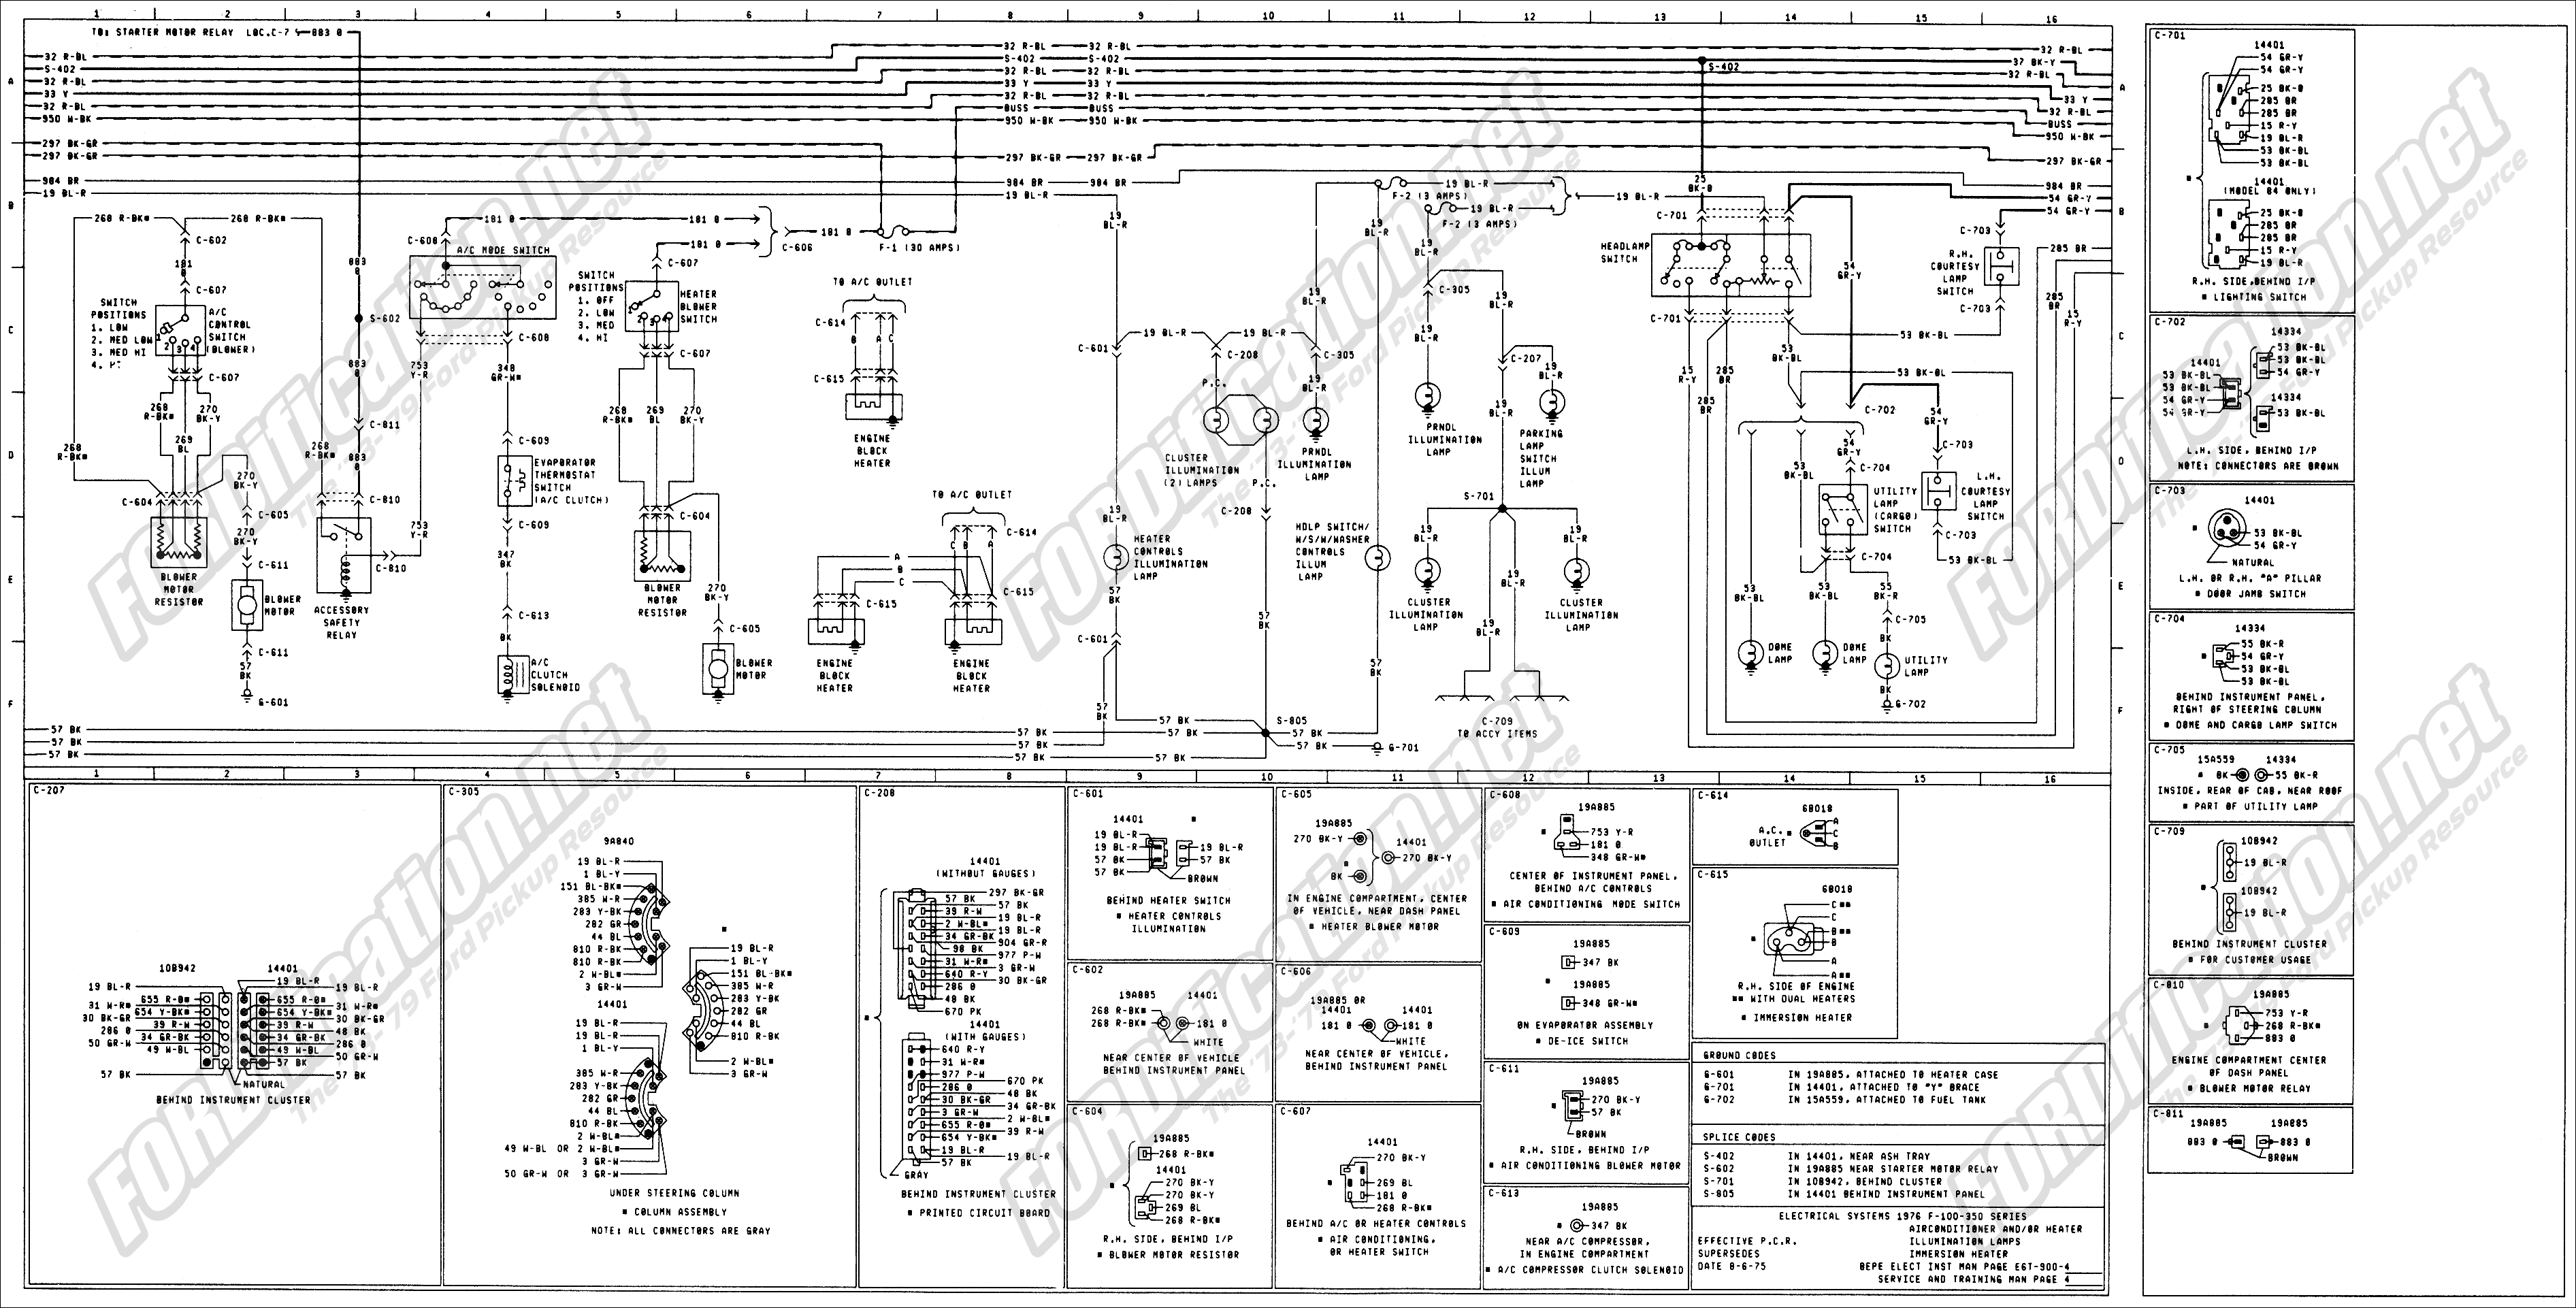 1973 1979 ford truck wiring diagrams & schematics fordification net on 1985 Ford E350 Wiring Diagram for 1985 ford f150 wiring diagram #47 at 85 Ford F150 Wiring Diagram